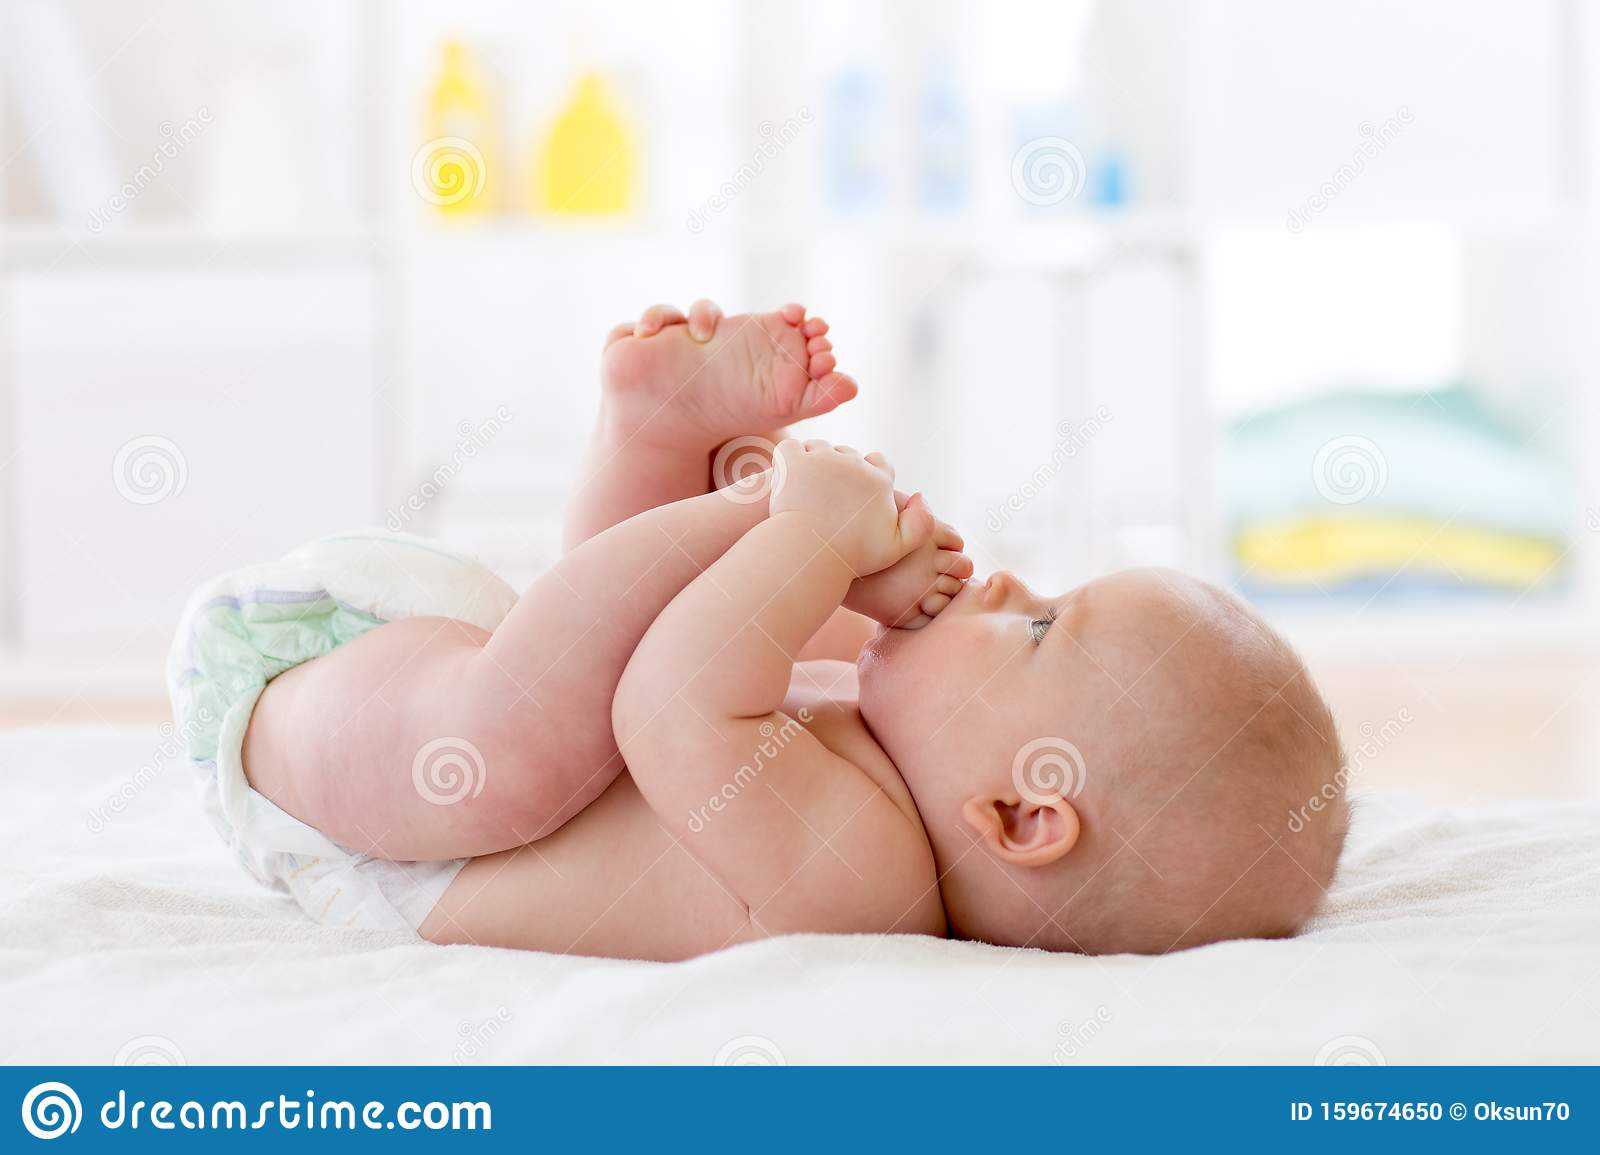 Funny Baby Wearing Diaper Infant Kid Skin Care Cute Child Playing With His Feet Stock Photo Image Of Feet Cute 159674650